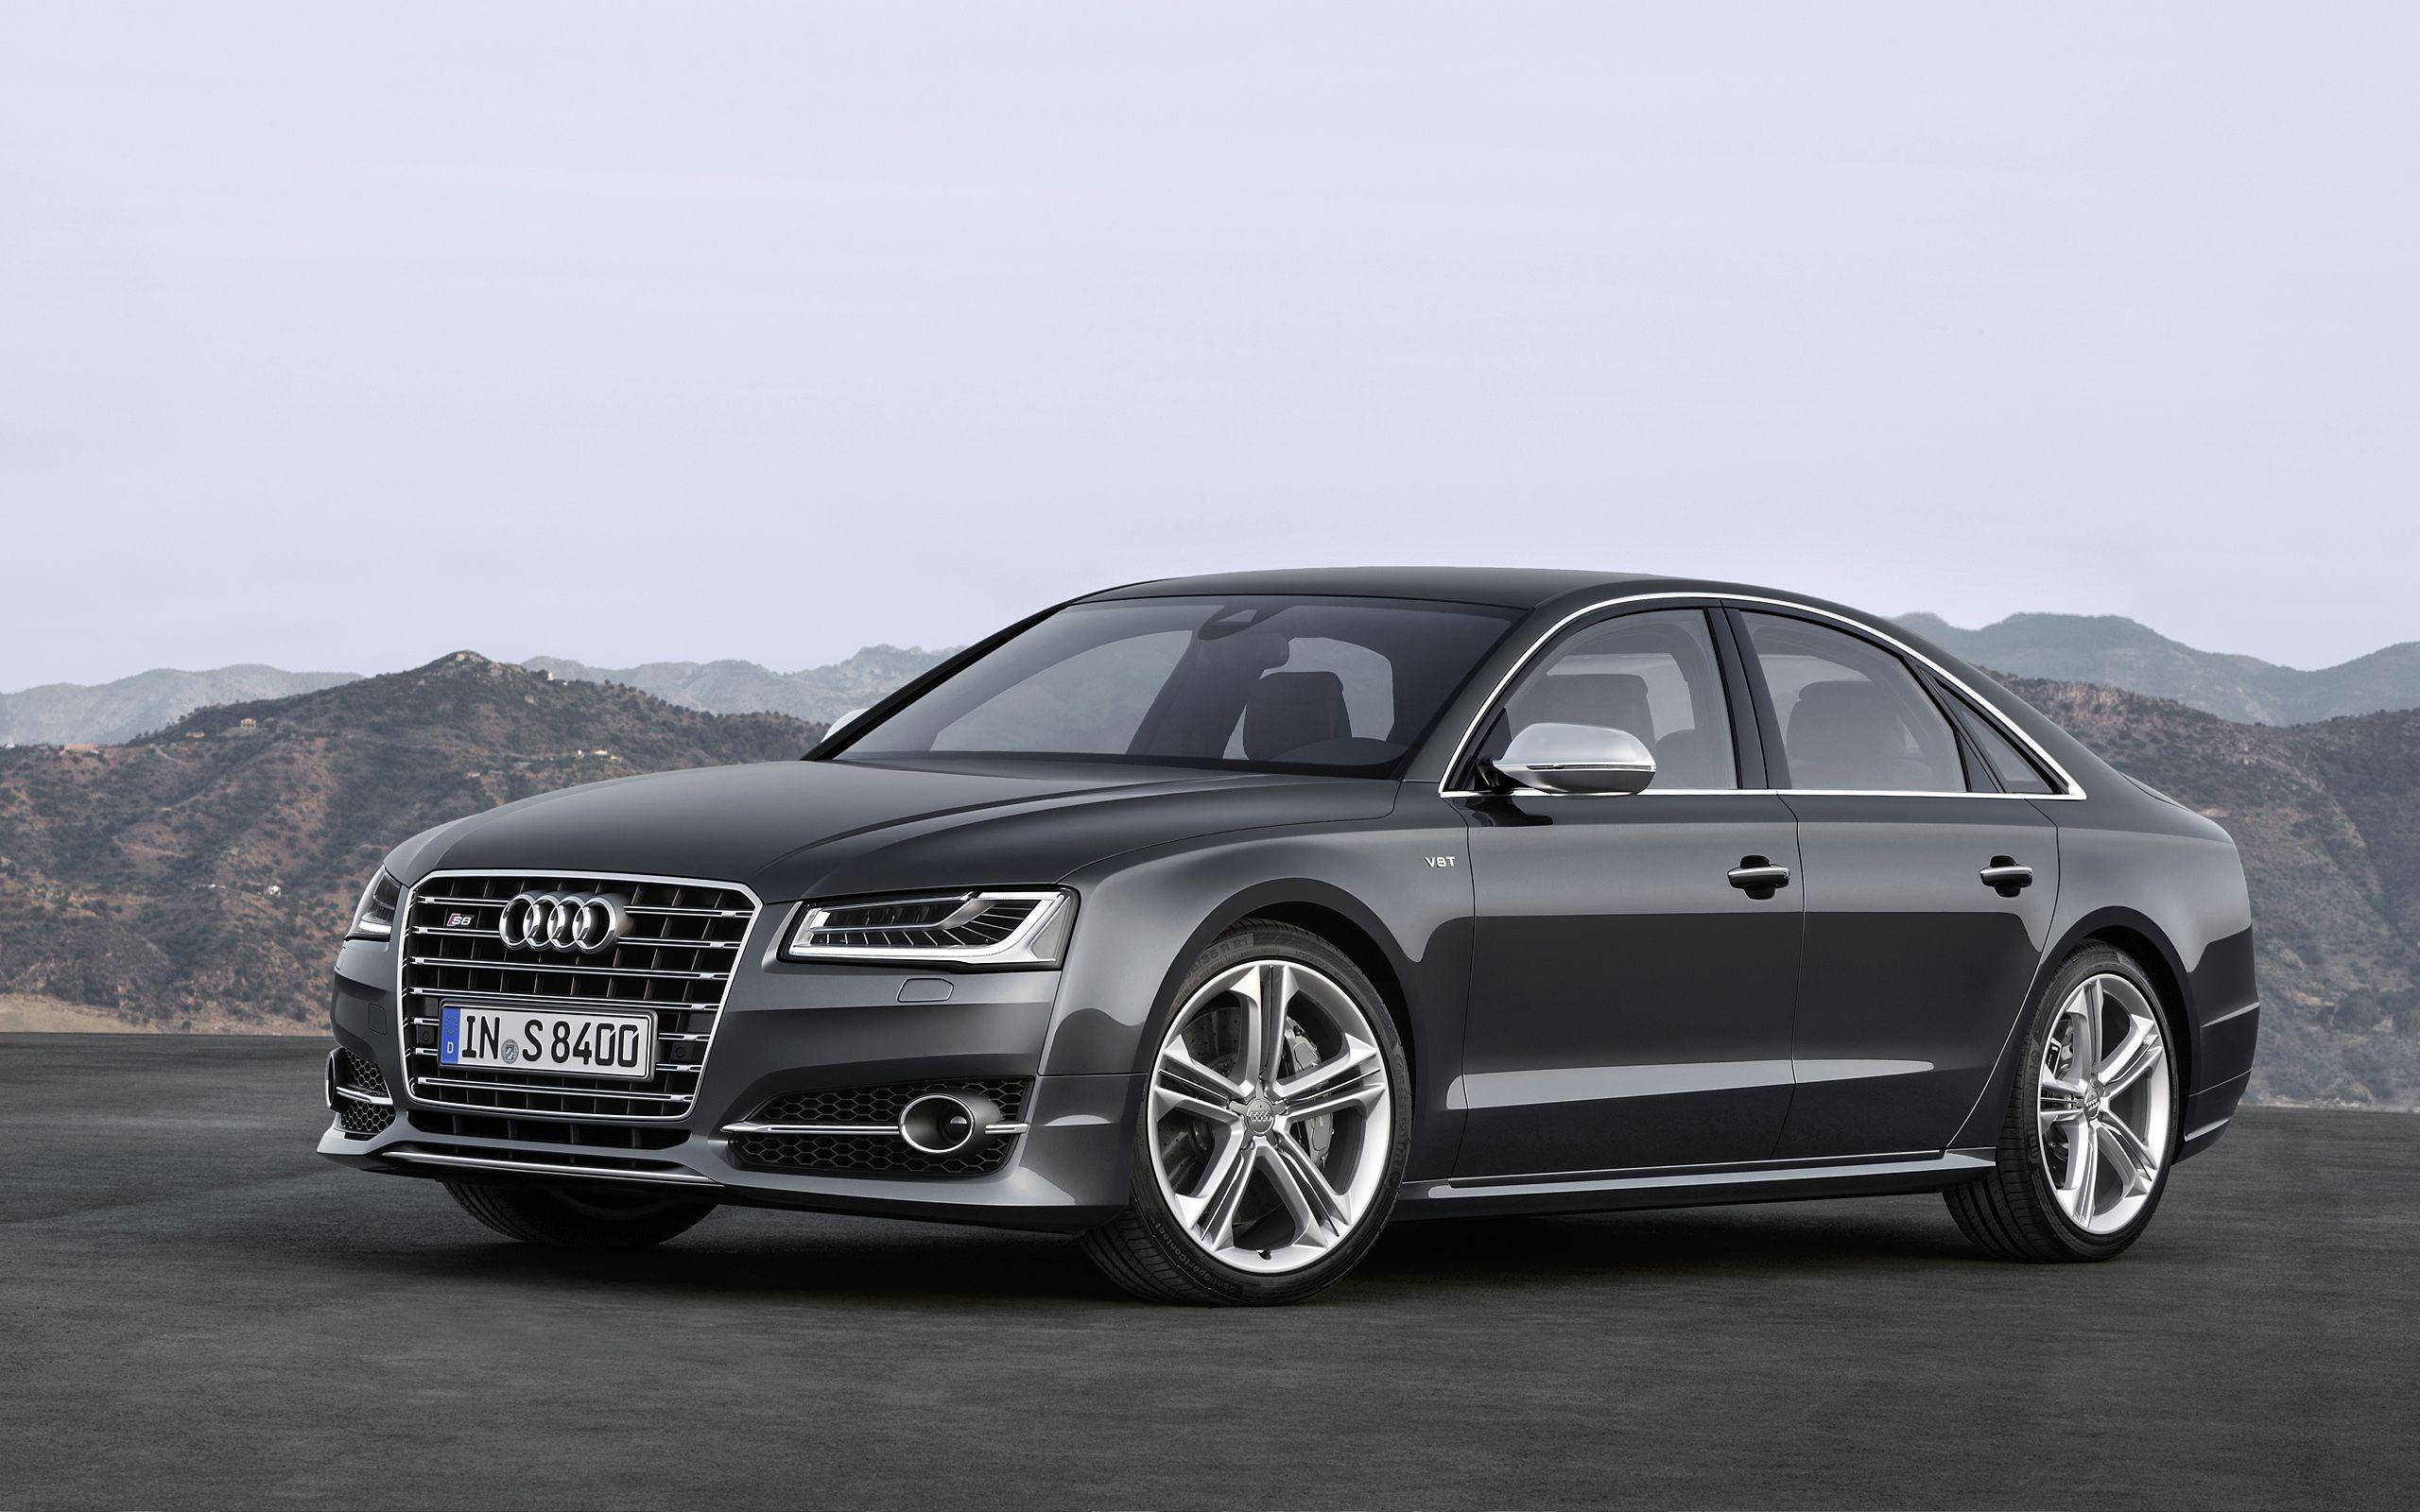 Audi S8 Wallpapers FREE Pictures on GreePX 2560x1600